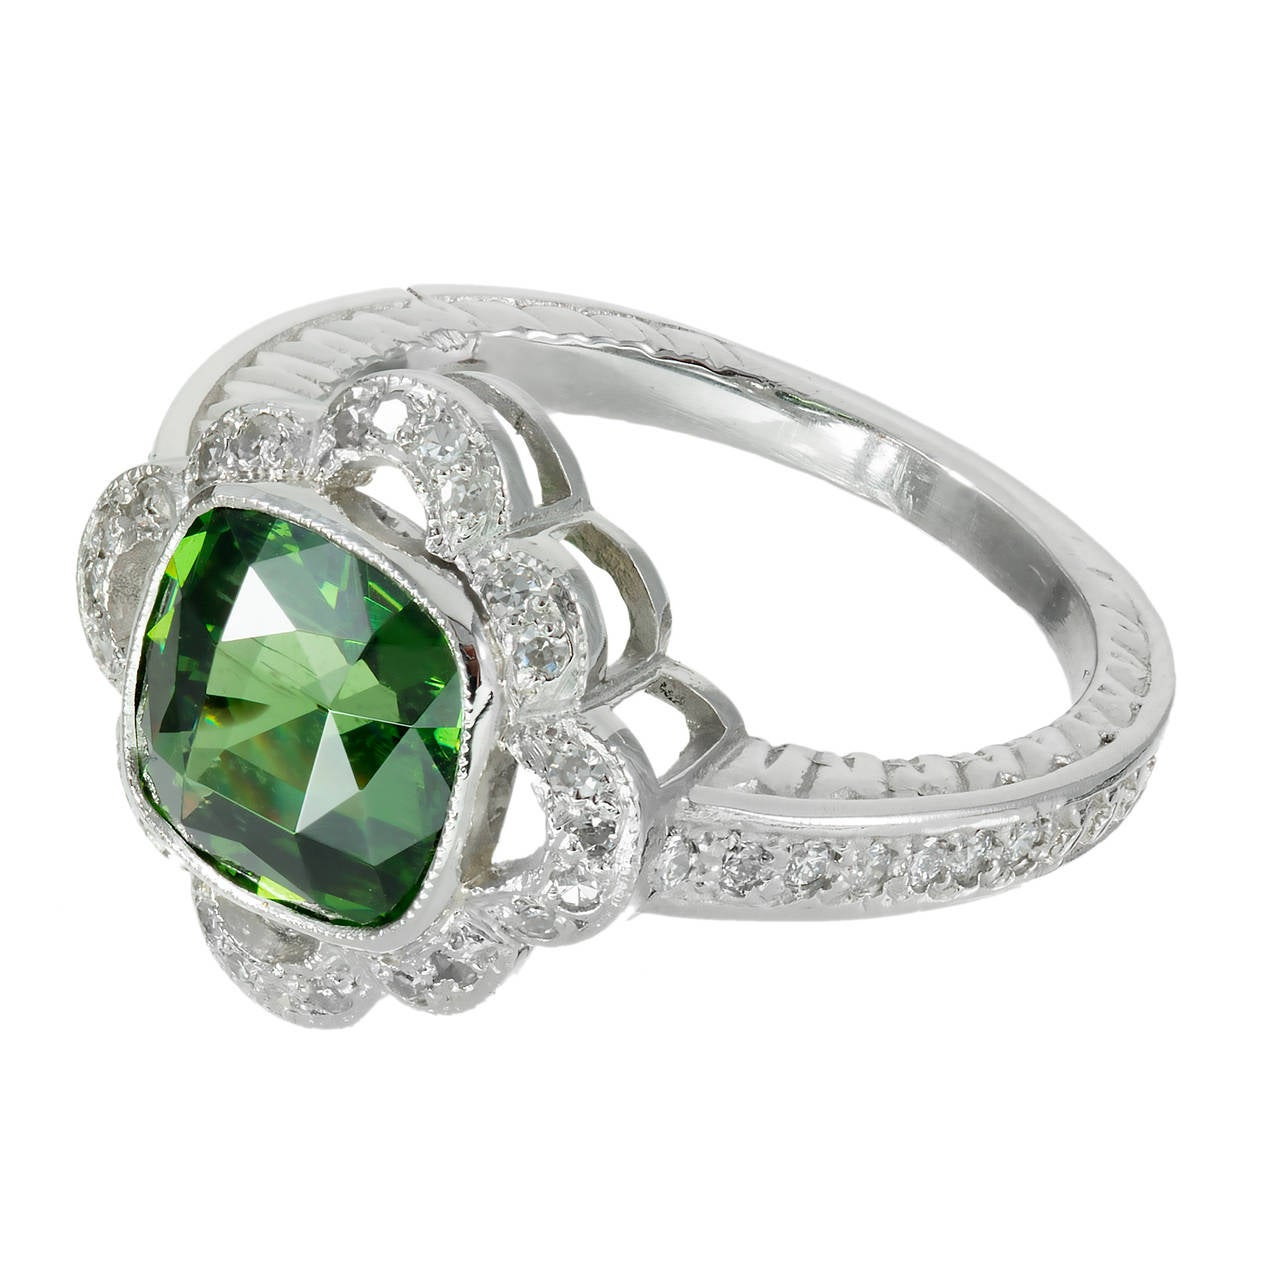 Diamond Rings For Sale Cheap: Green Zircon Diamond Platinum Engagement Ring For Sale At